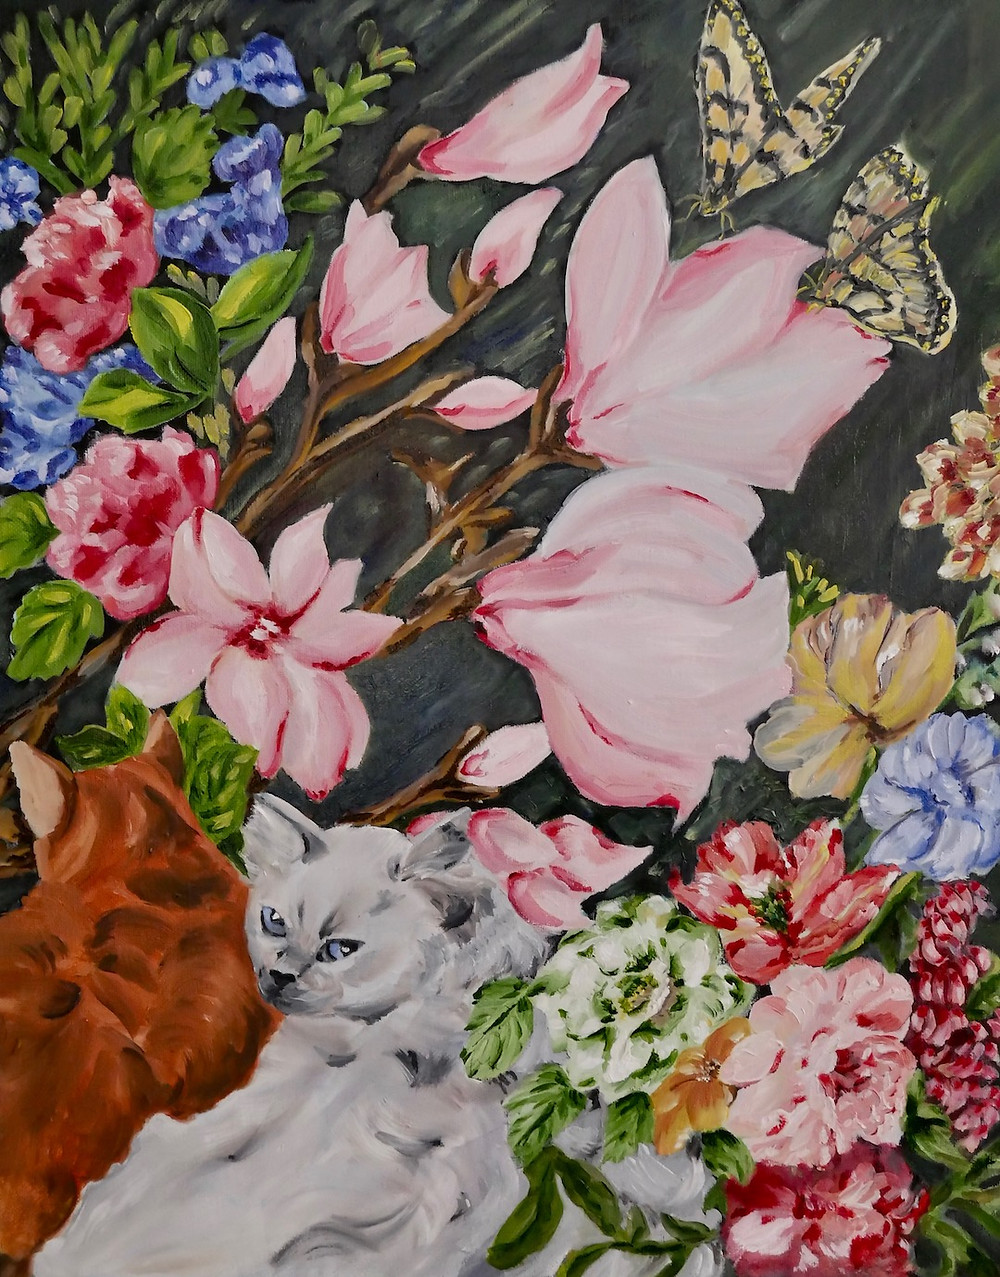 Painting of two cats with greenery and florals.